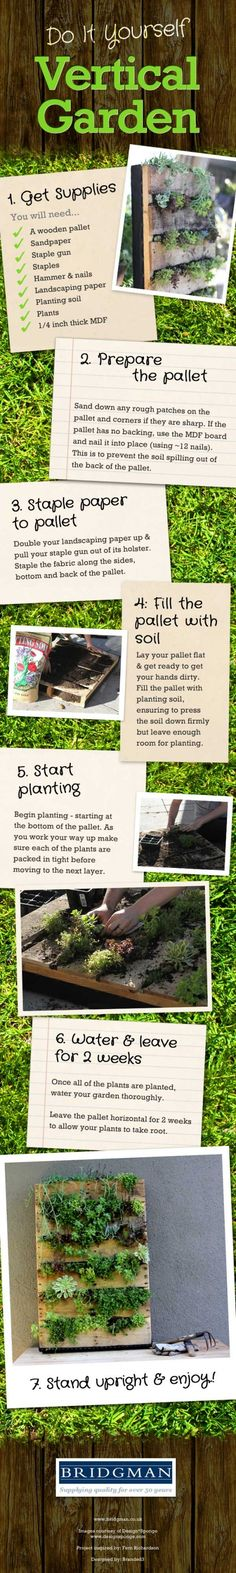 diy-vertical-garden-wall-made-from-wood-pallets